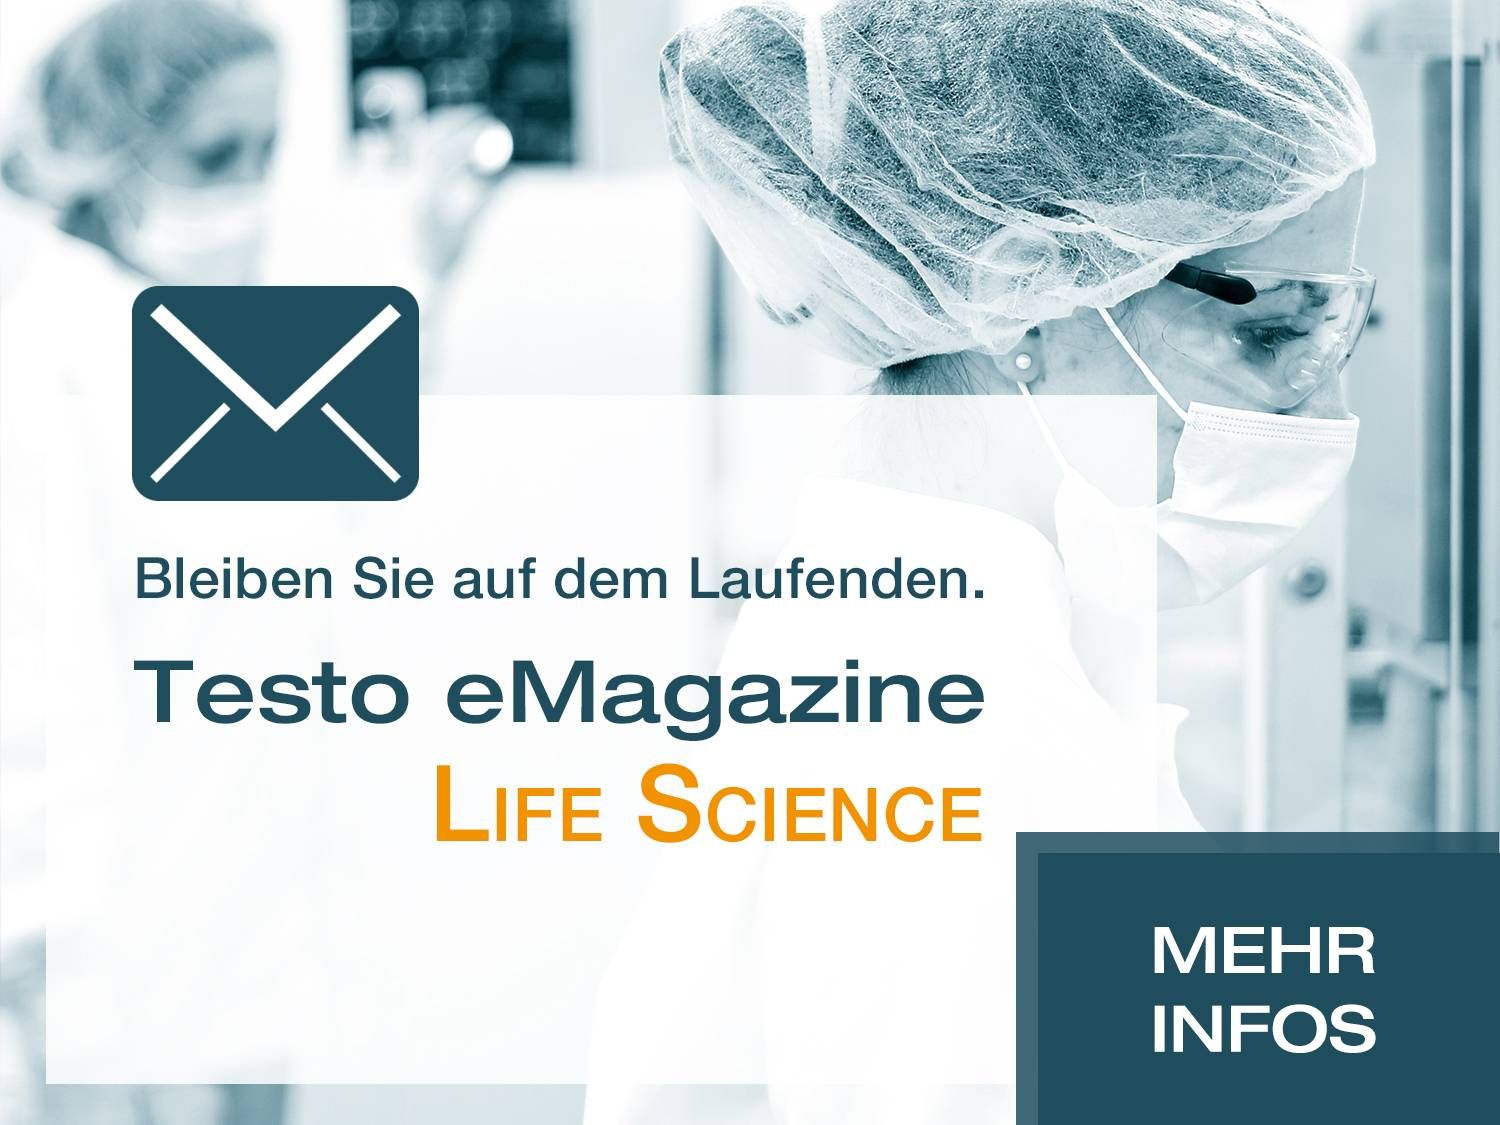 floating-banner-emagazine-solution-life-science-1500x1125px.jpg